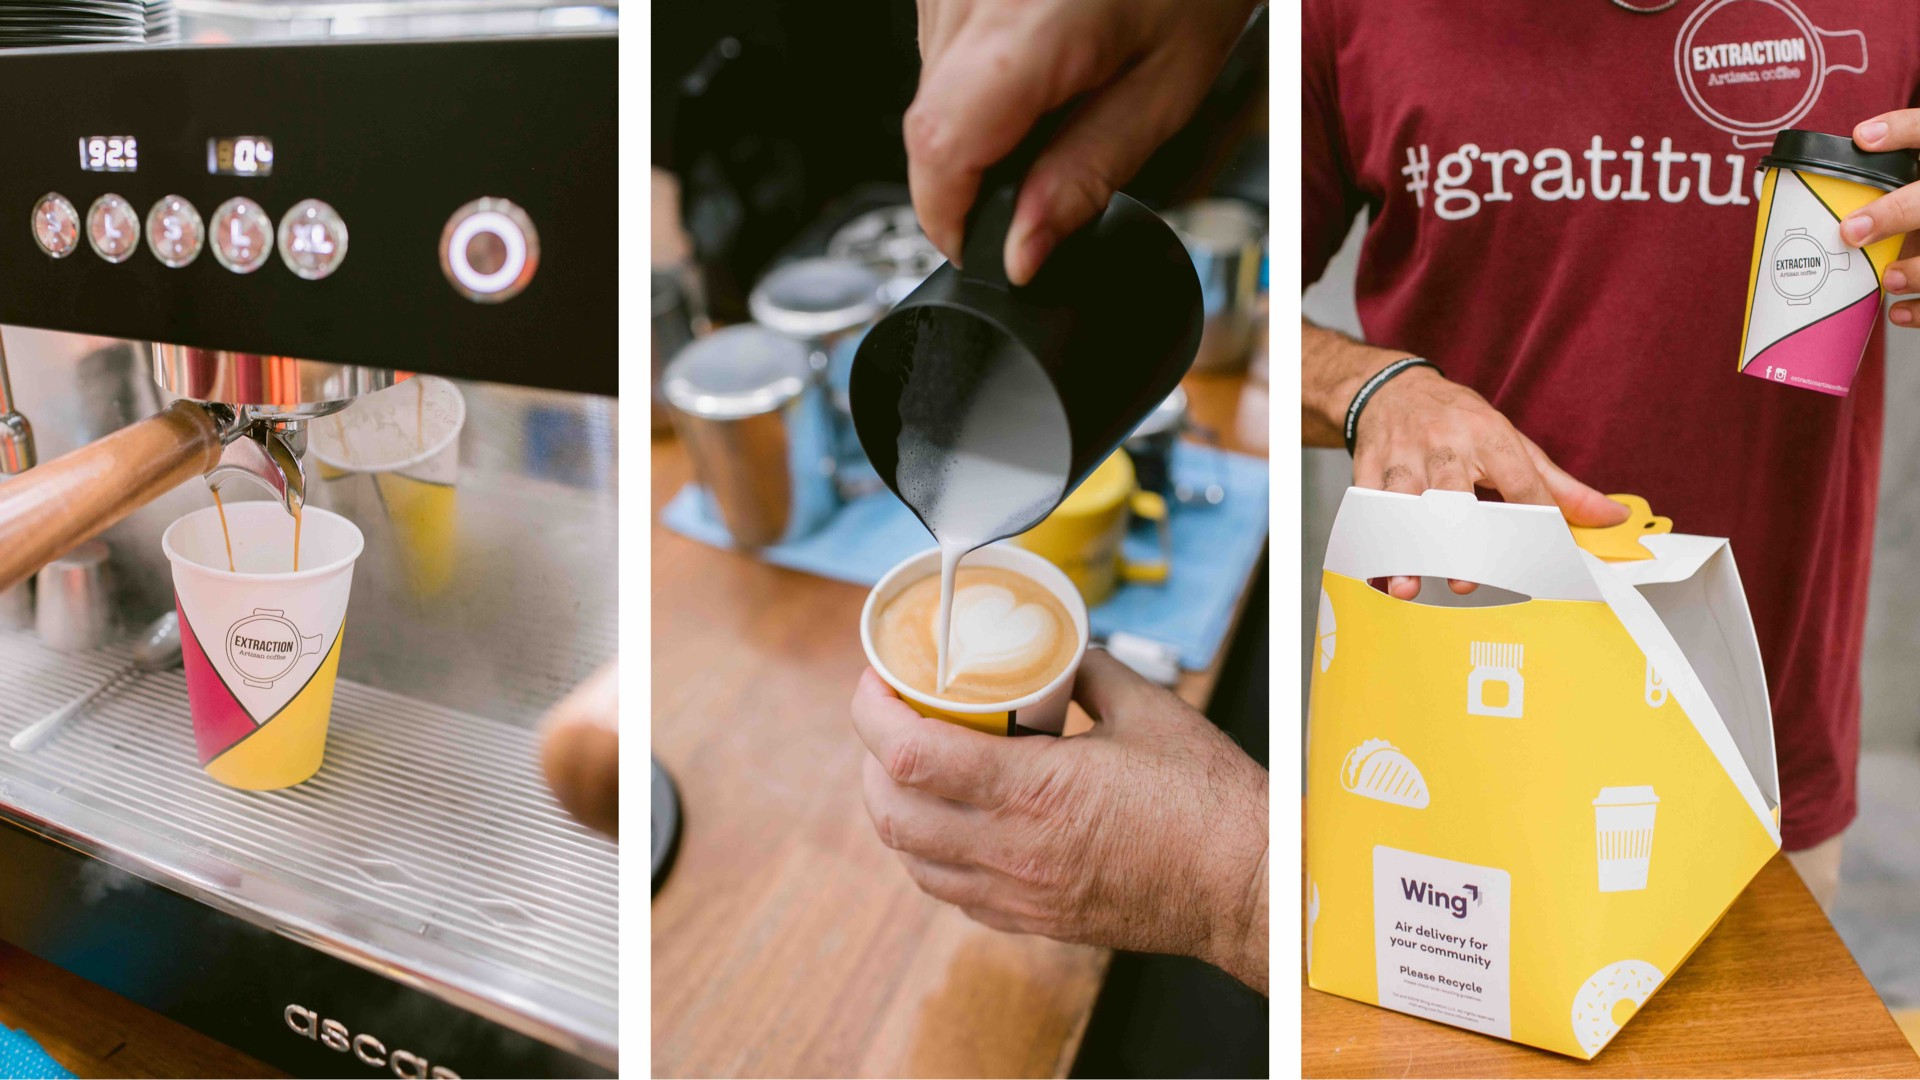 Extraction Coffee Gratitude In A Well Brewed Cup By Wing Medium Wing Blog Medium